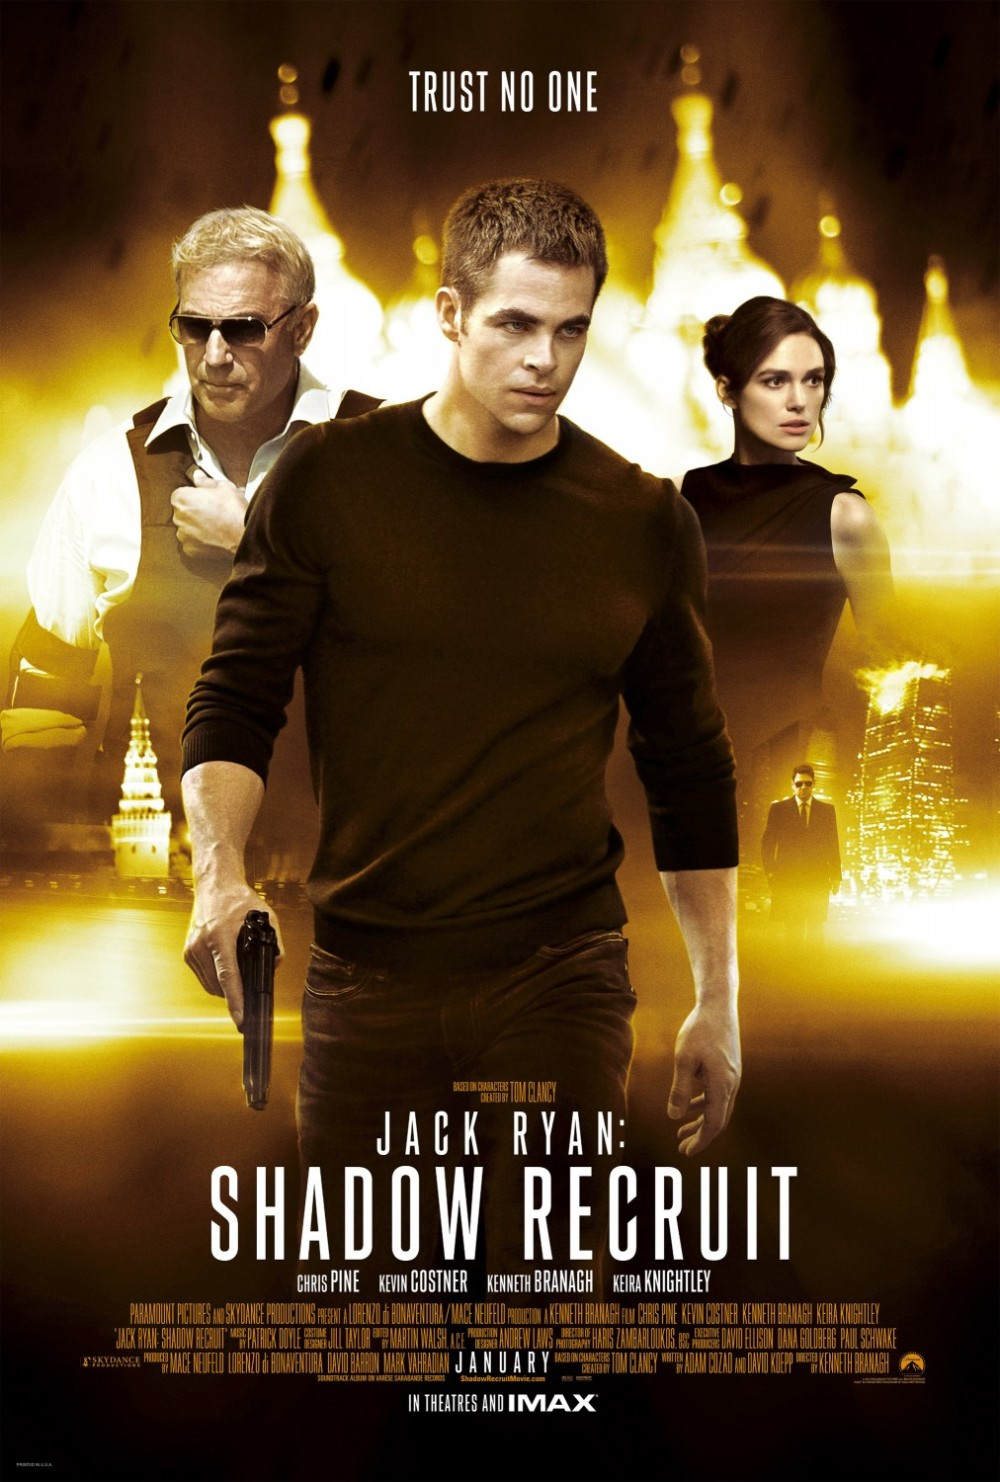 Jack Ryan Shadow Recruit movie poster